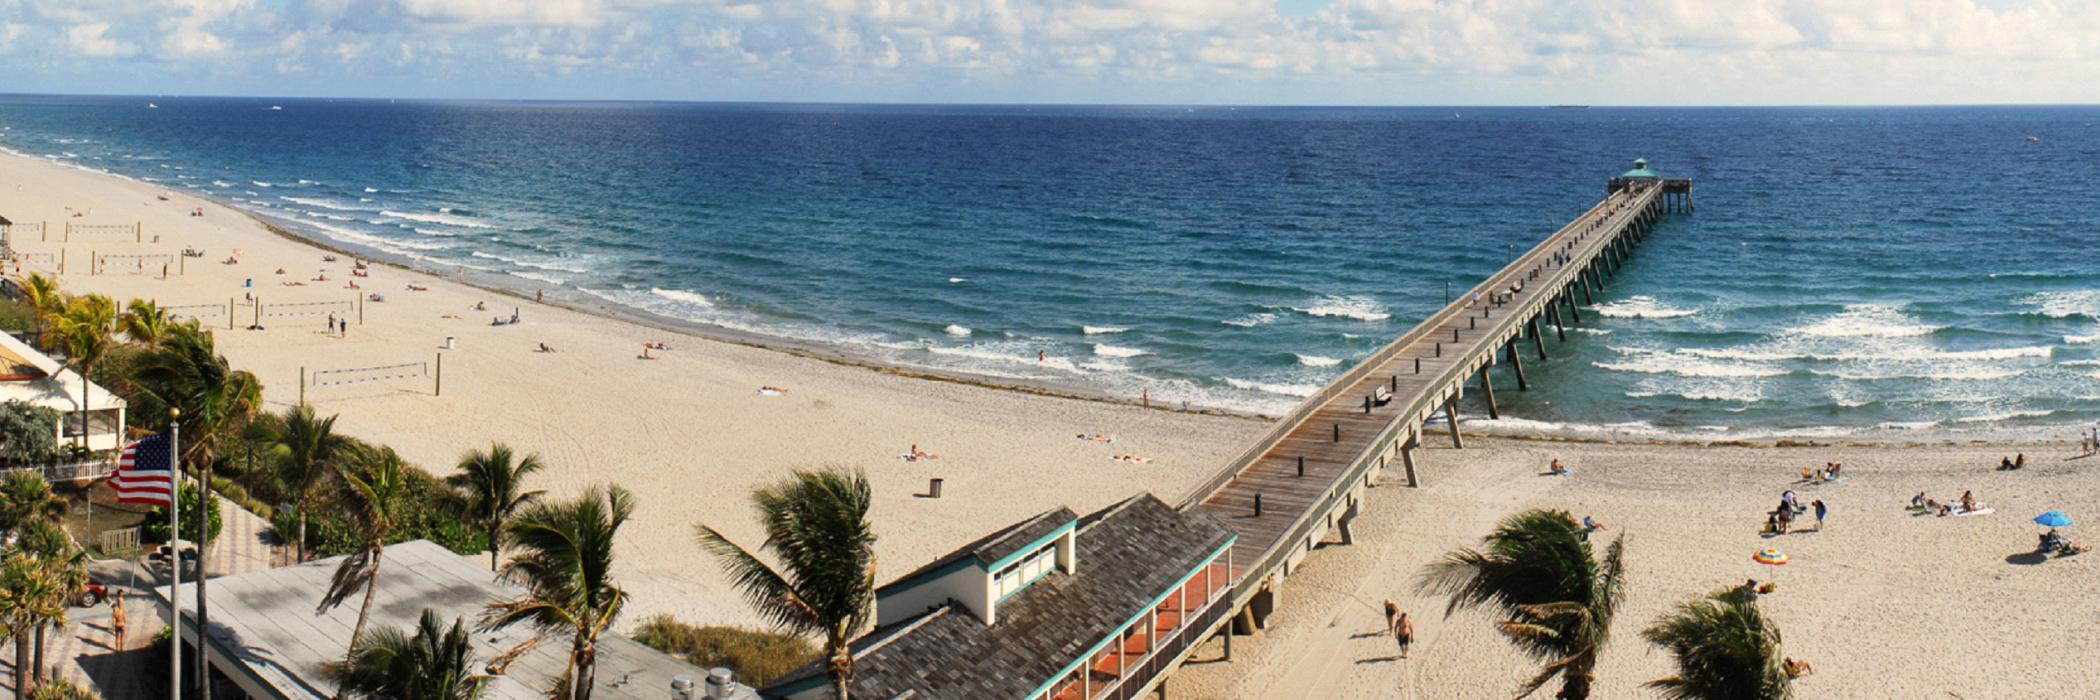 DeerfieldBeach